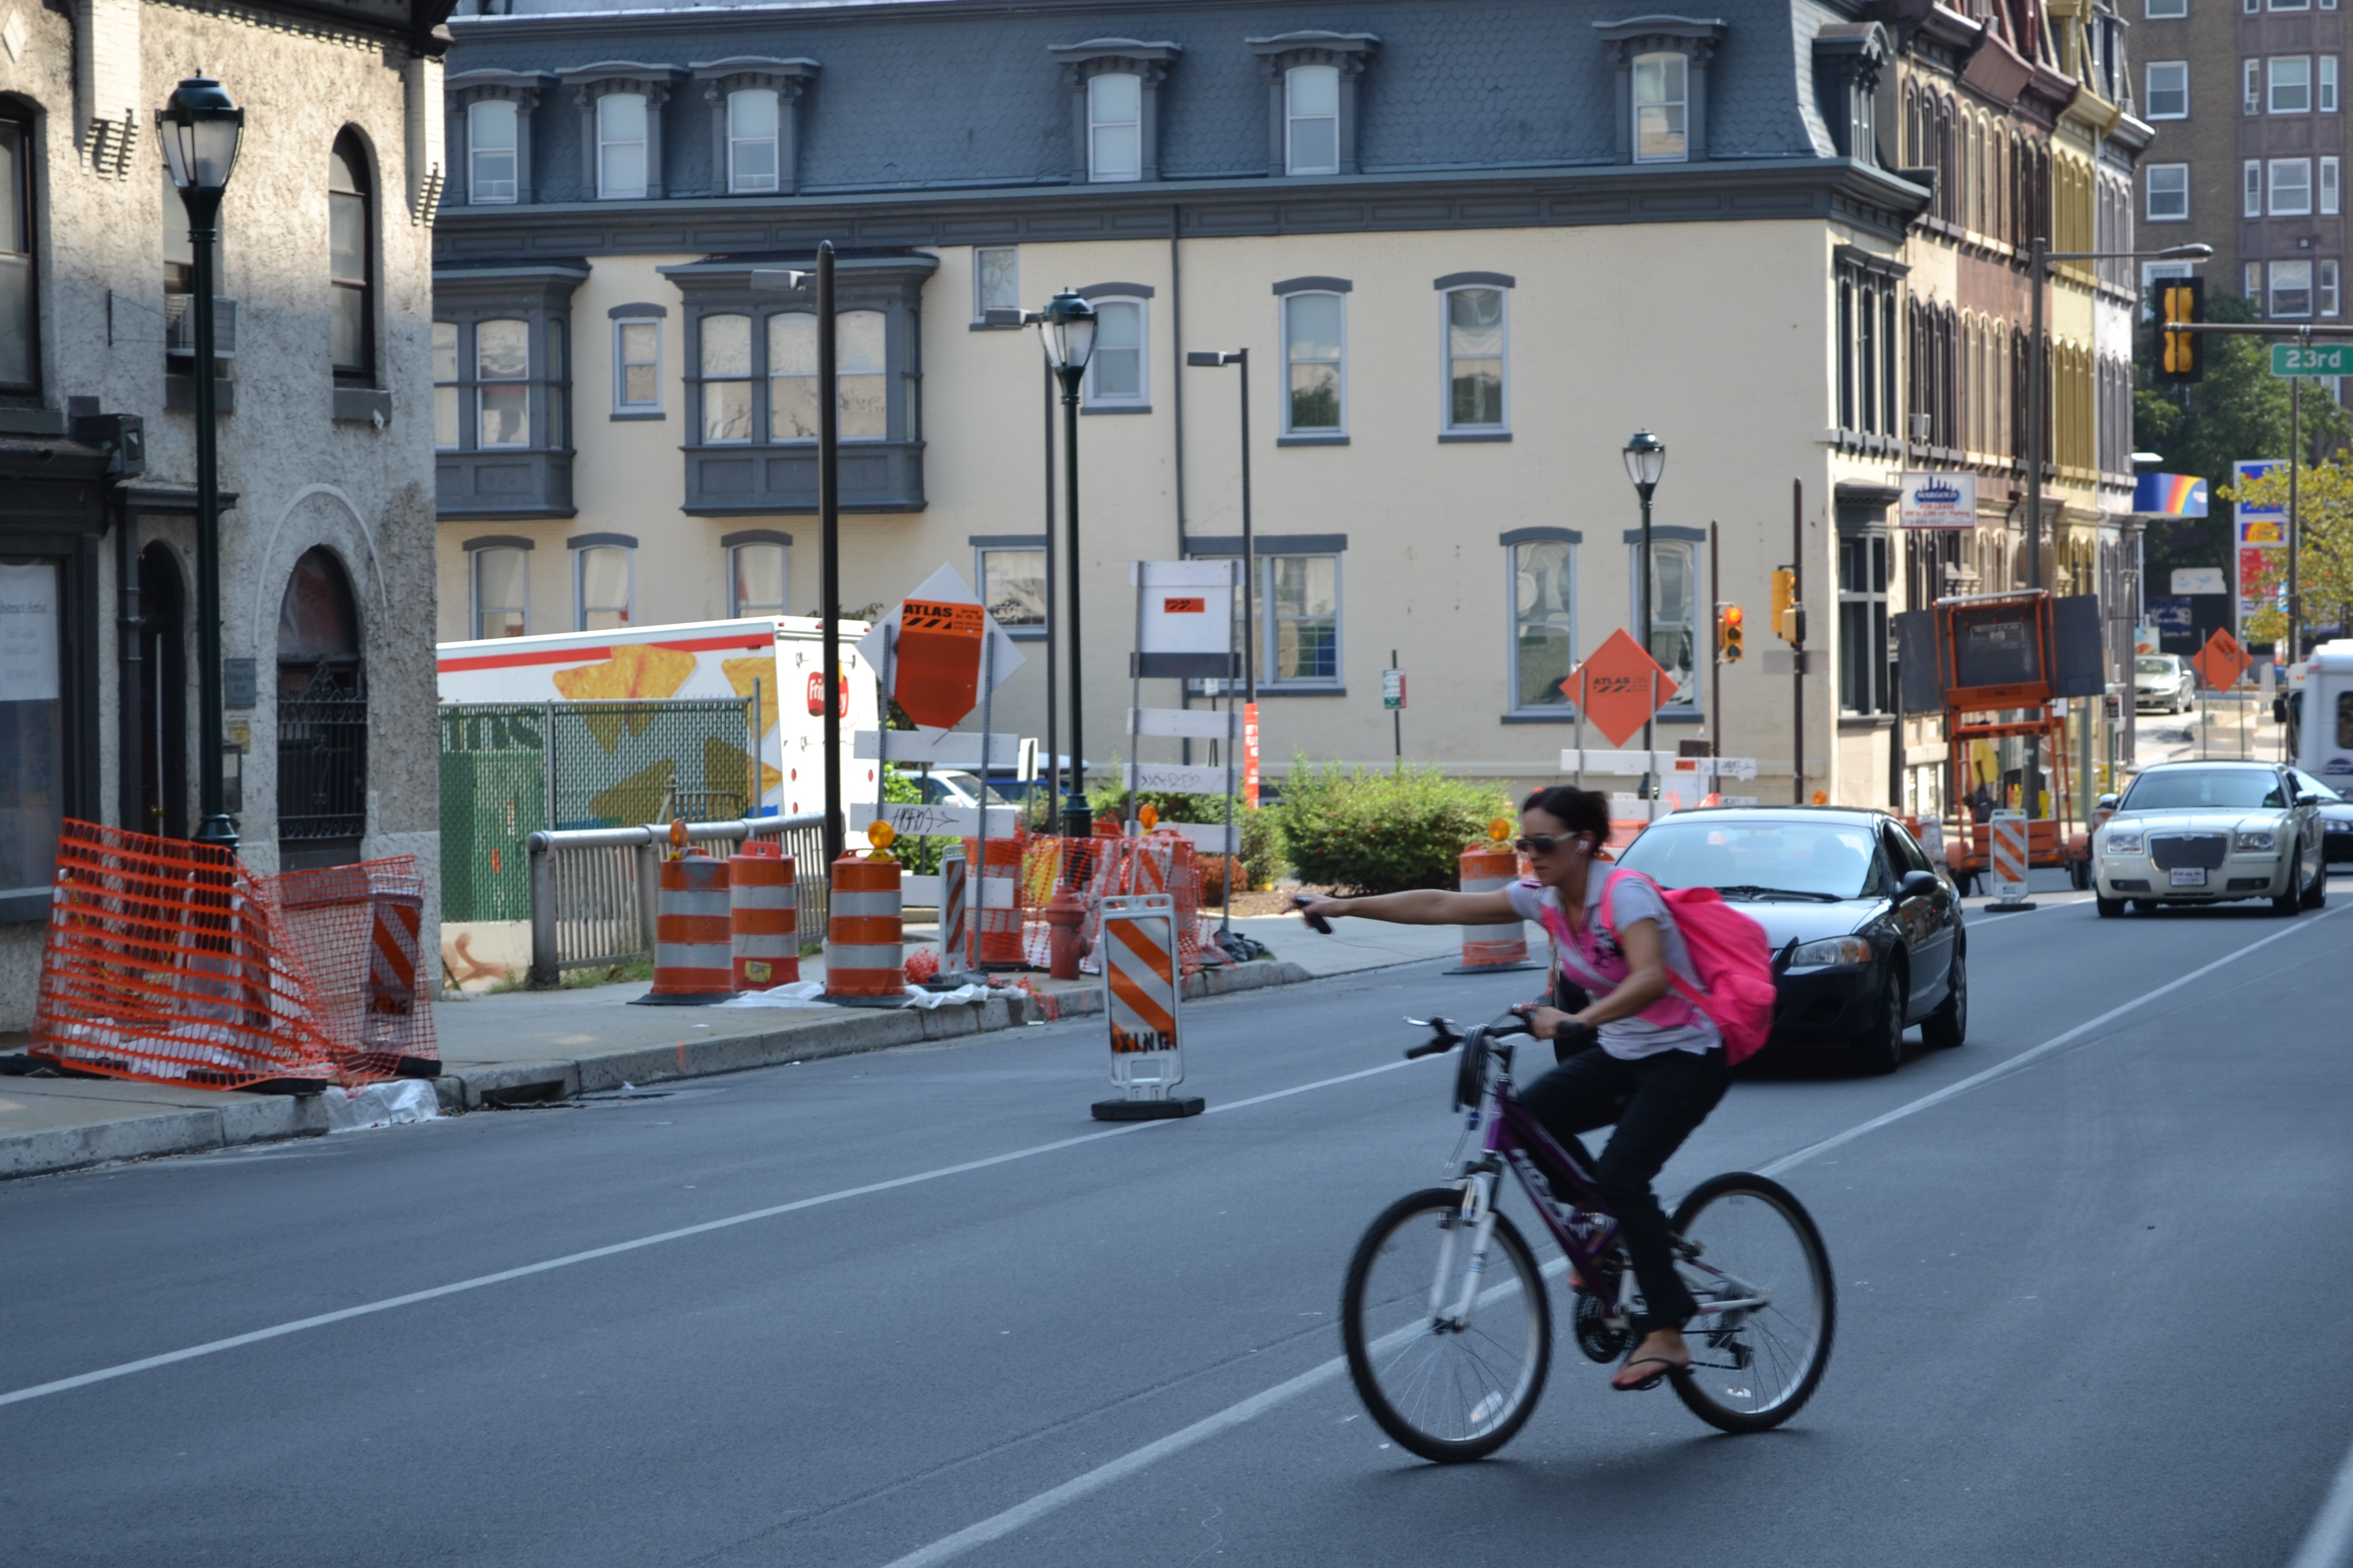 Despite detour signs, some cyclists still used the bridge during construction